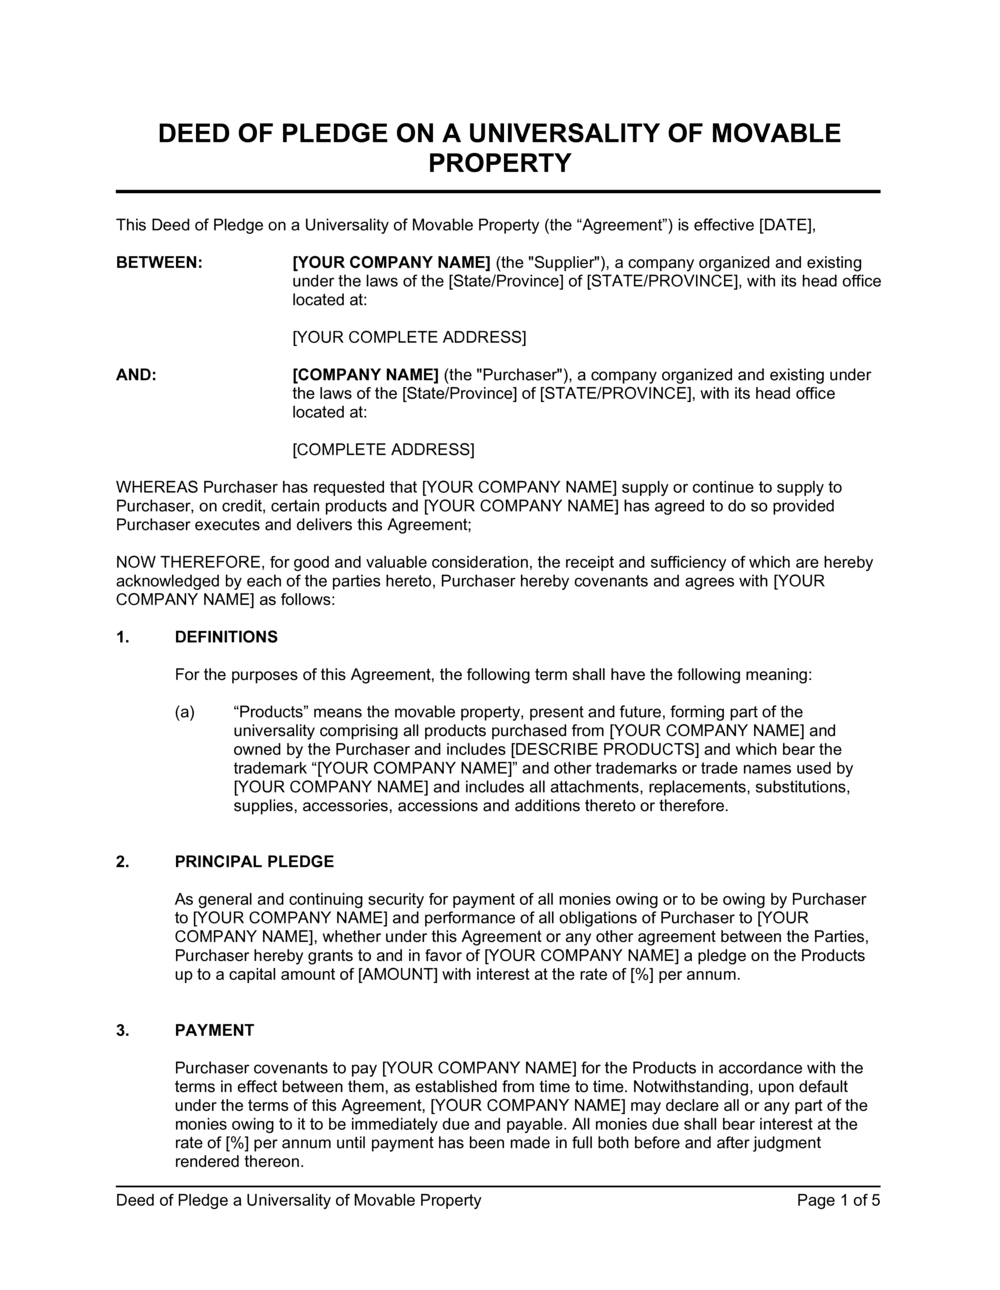 Business-in-a-Box's Deed of Pledge Universality of Movable Property Template